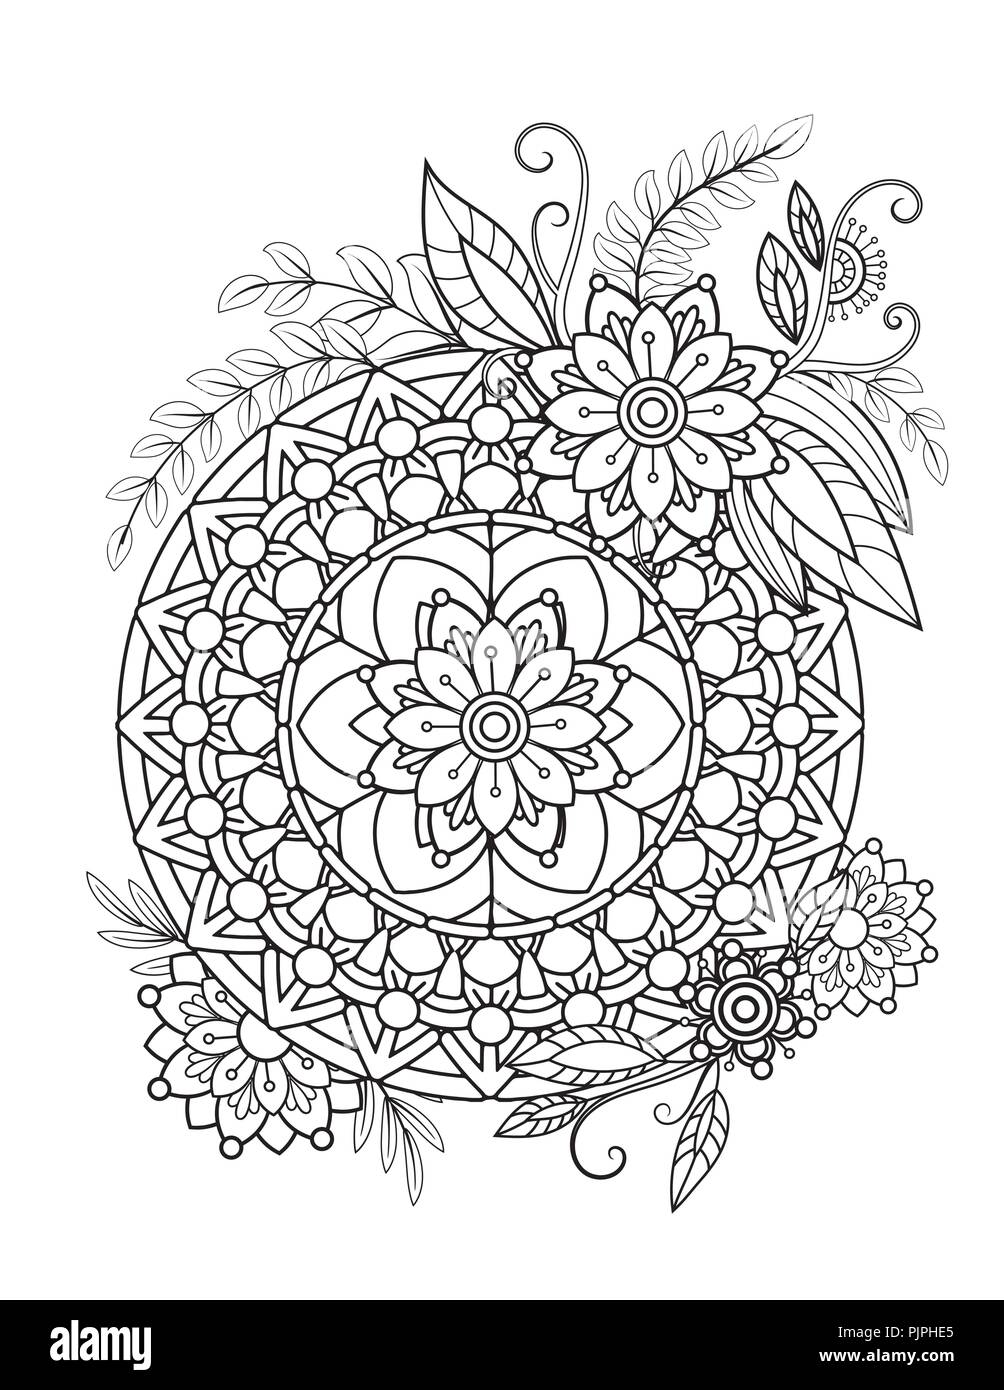 Floral Mandala Pattern In Black And White Adult Coloring Book Page With Flowers Mandalas